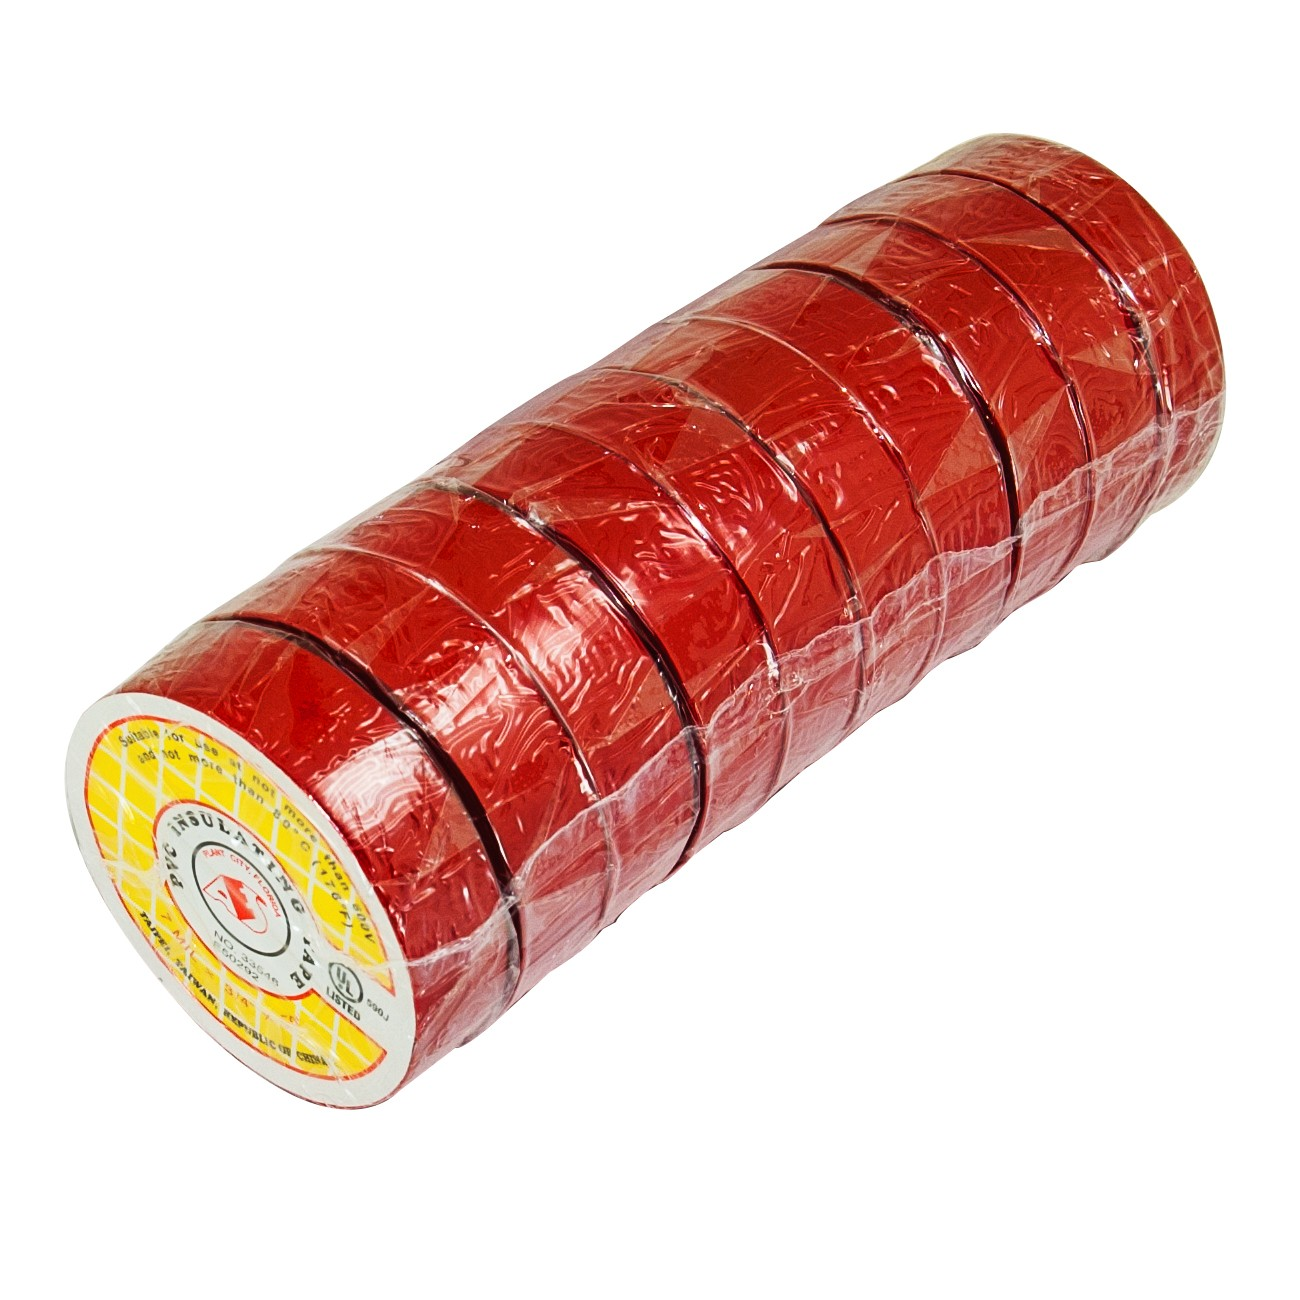 "50ft 3/4"" Electrical Tape - Red (10 Rolls)"